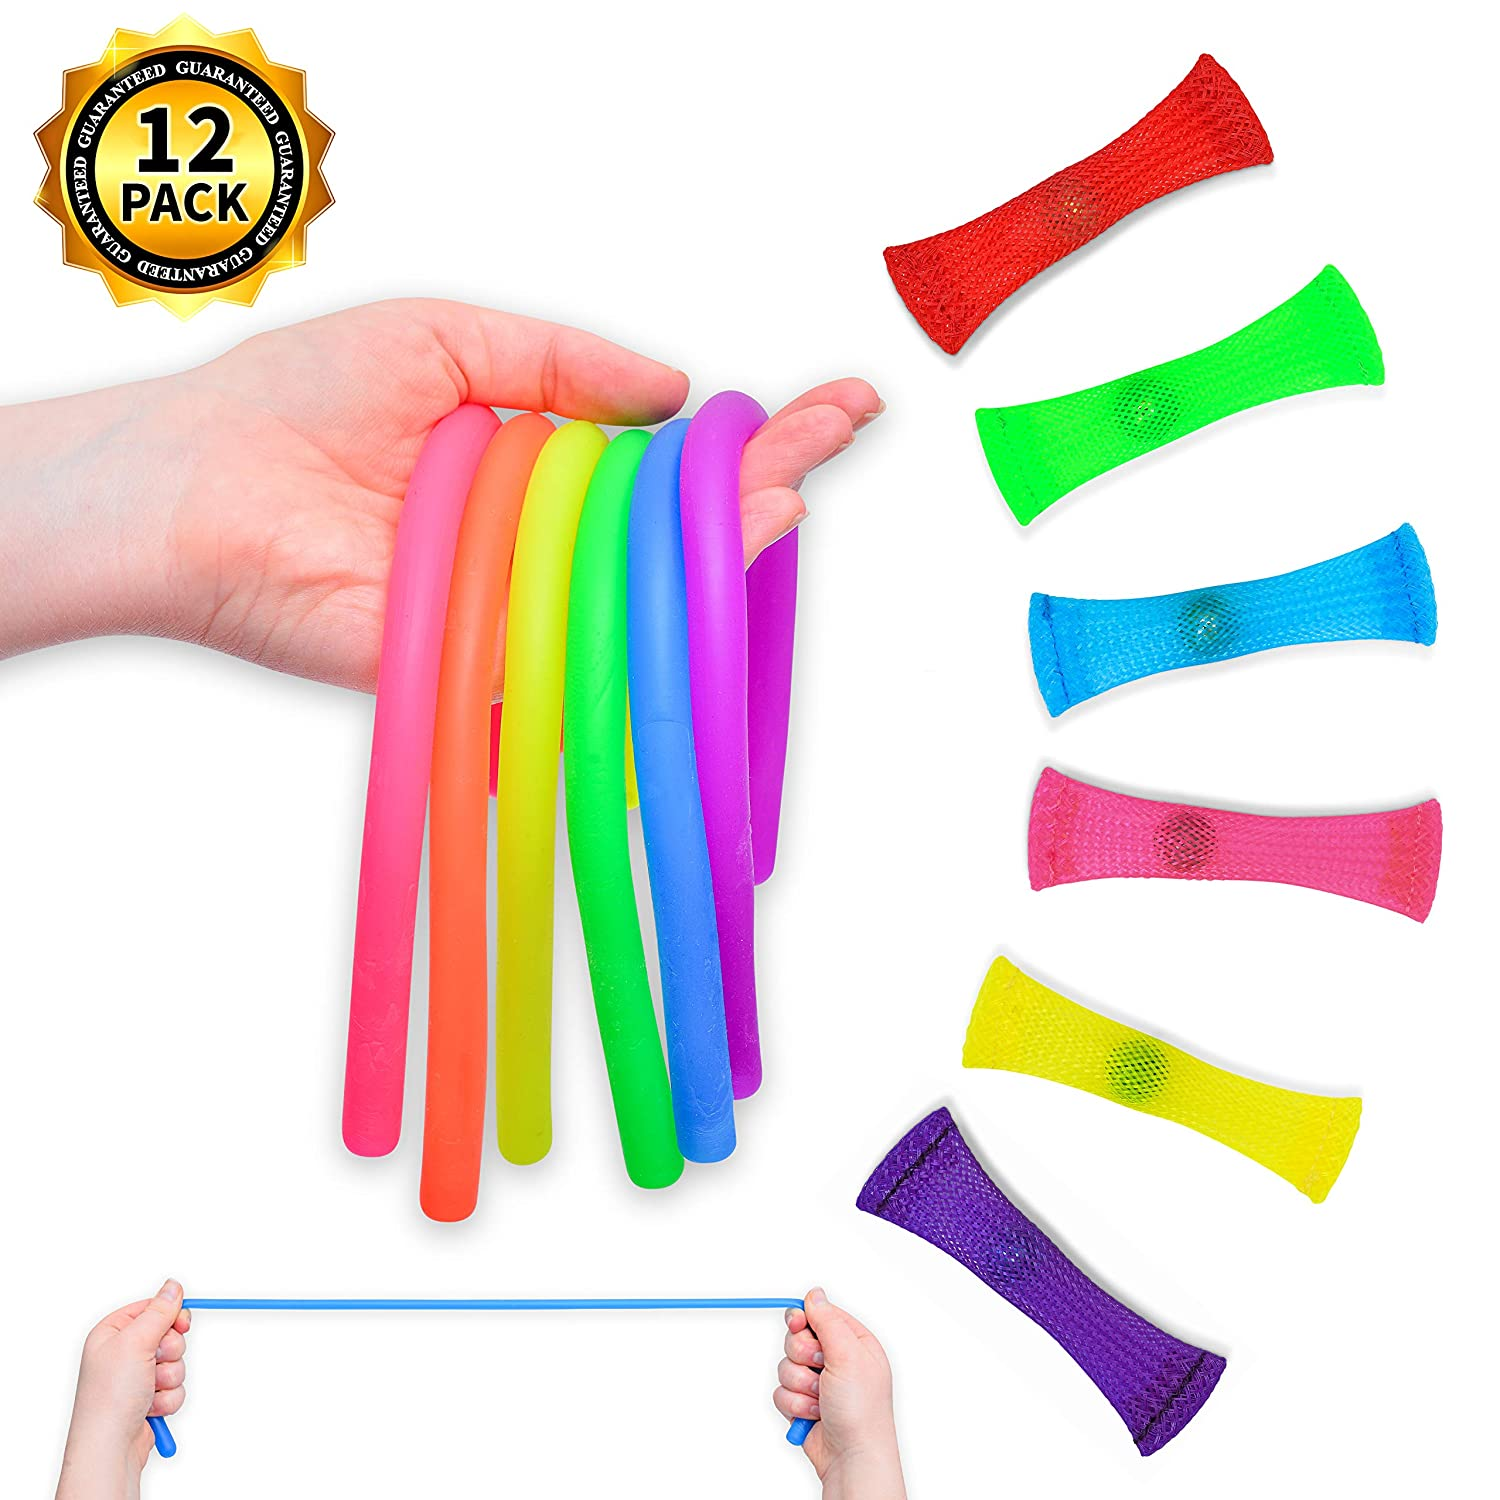 Buzzingbee Sensory Fidget Toy Bundle - Set of 12 Colorful Stretchy Toys for Adults, Teens, & Kids | Tools for Stress Relief, Anxiety, Focus | Work, School, Office Accessories | ADHD, ADD, OCD, Autism